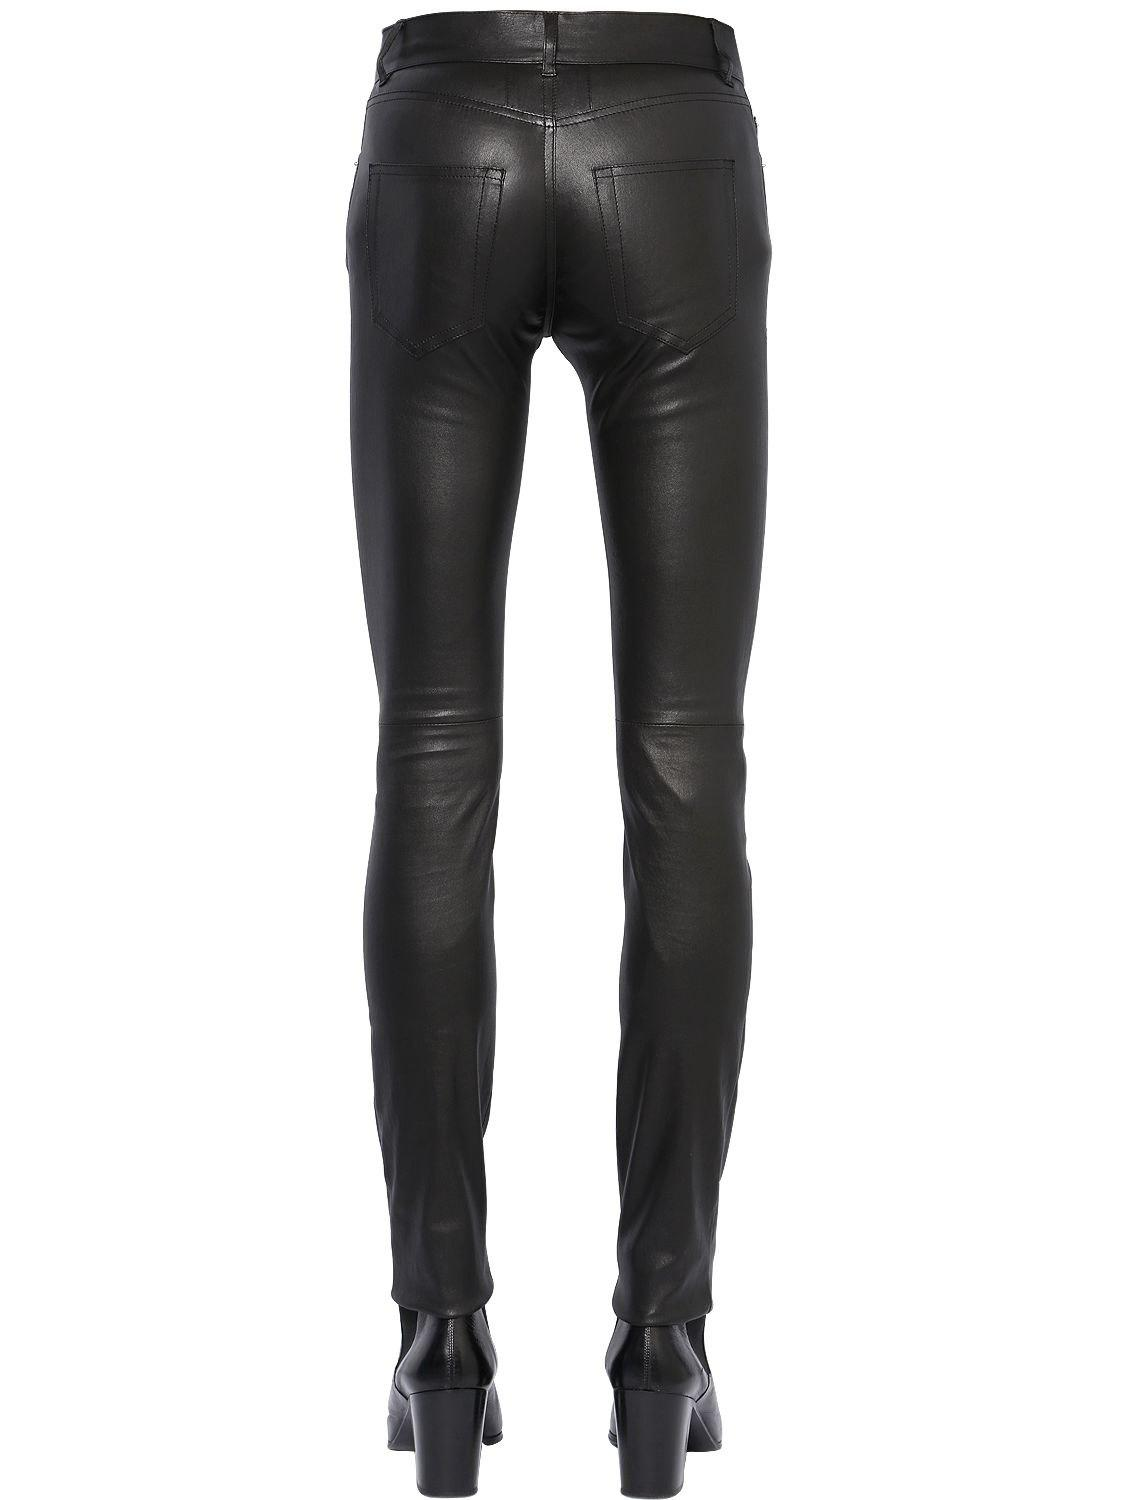 6cfcef024b4 Saint Laurent 15Cm Skinny Stretch Faux Leather Jeans in Black for ...